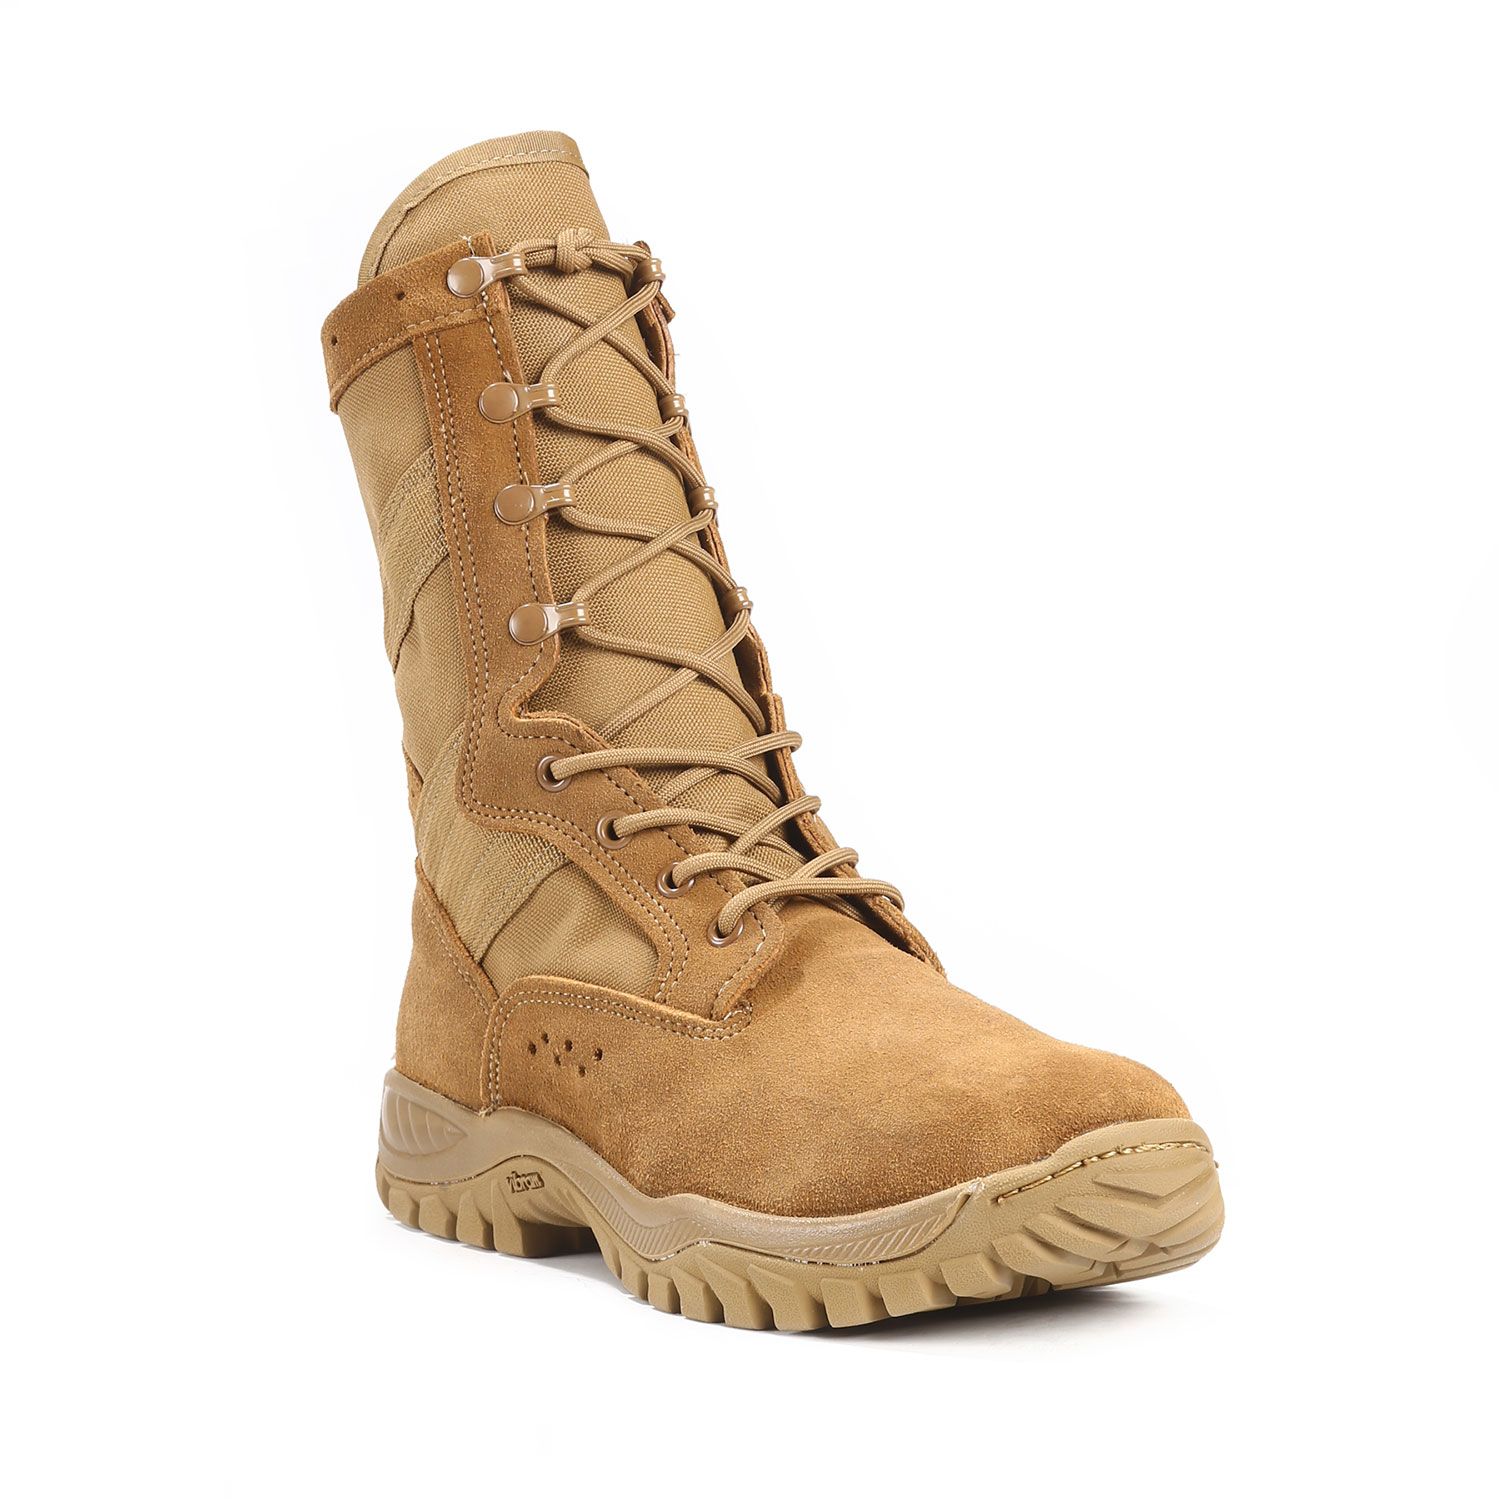 Belleville One Xero Ultra-Light Assault Boots